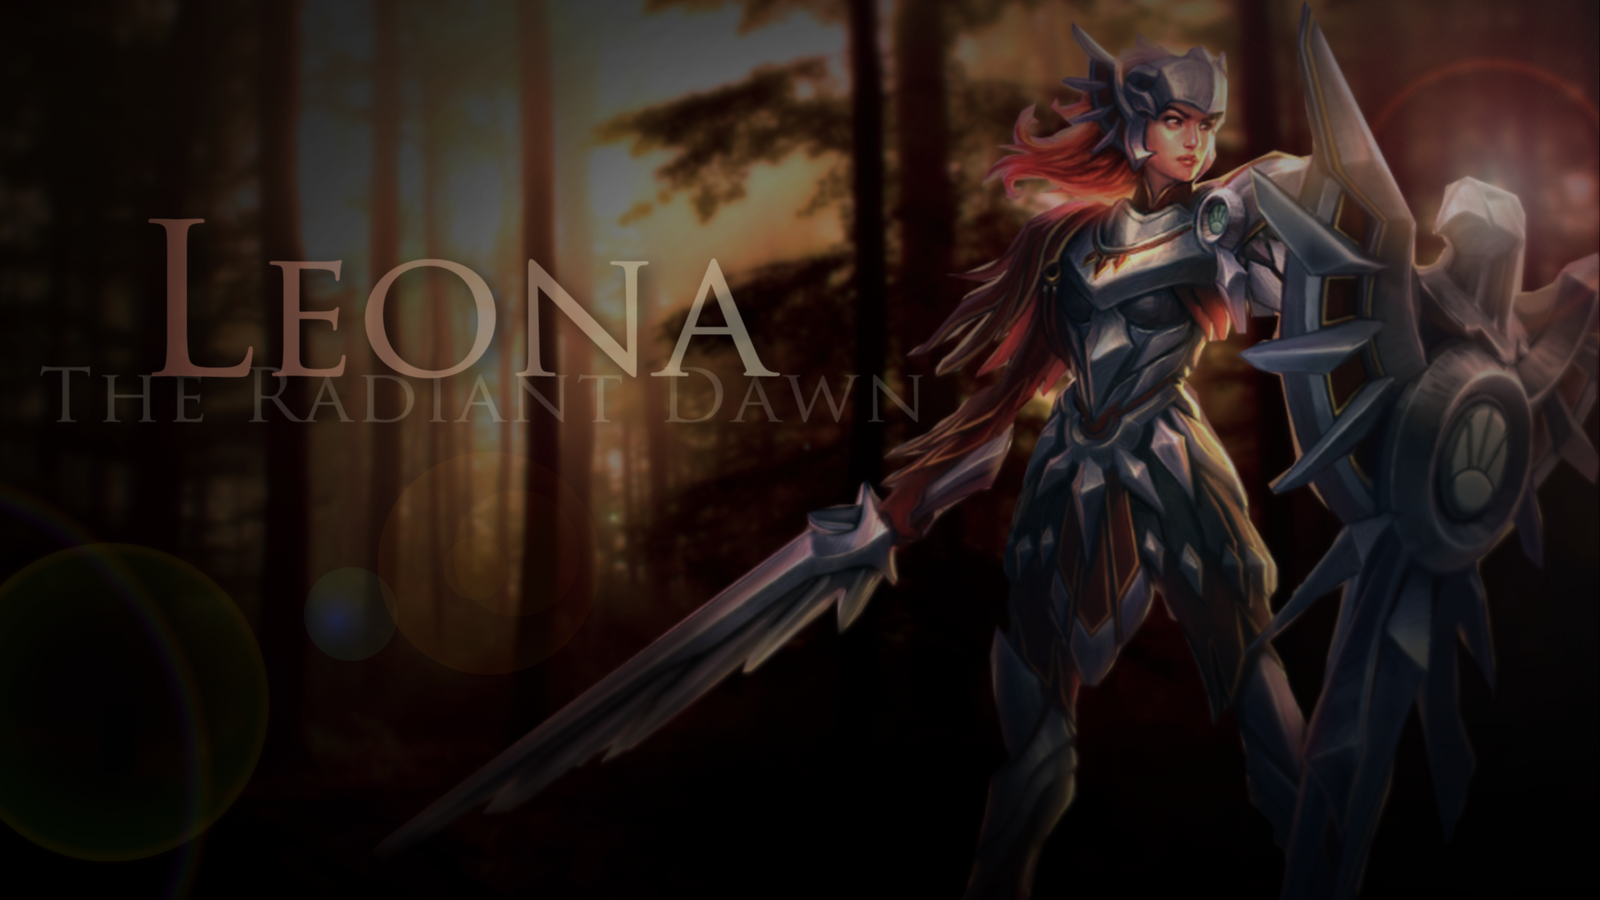 leona wallpaper fan art - photo #28